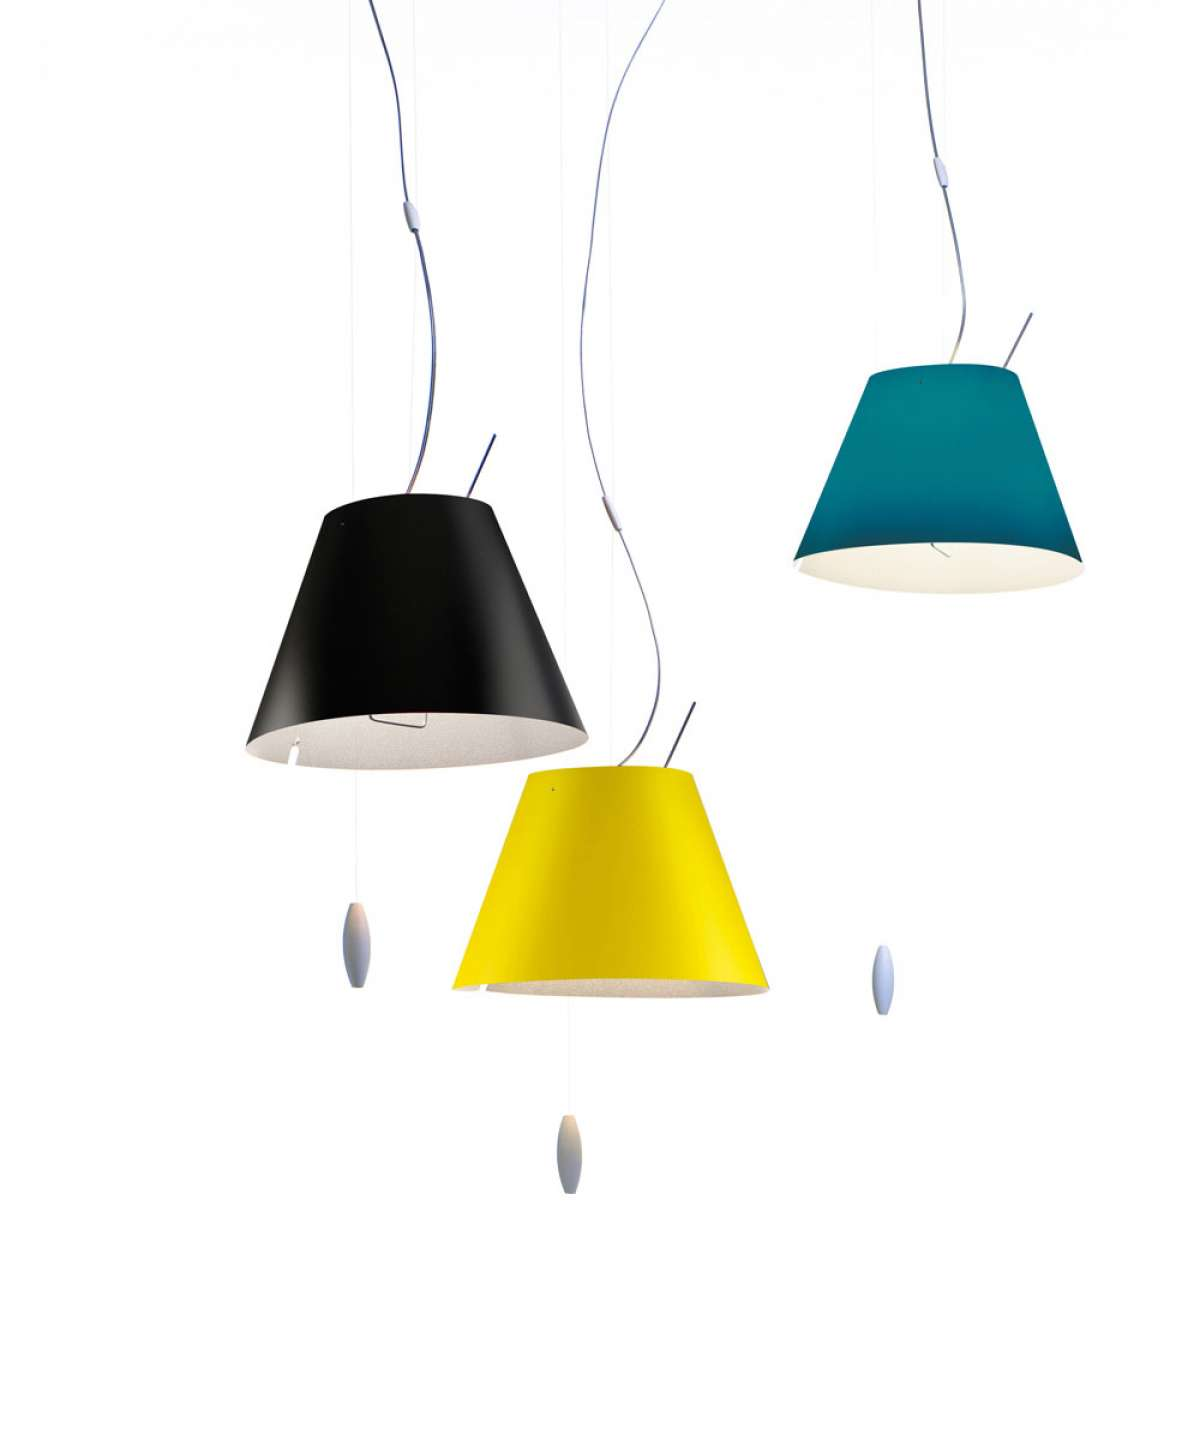 Costanzina Suspension Lamp - The colored polycarbonate shade adds personality to any setting. The control rod is positioned close to the light source. A counterweight provides easy height adjustment.   | Matter of Stuff